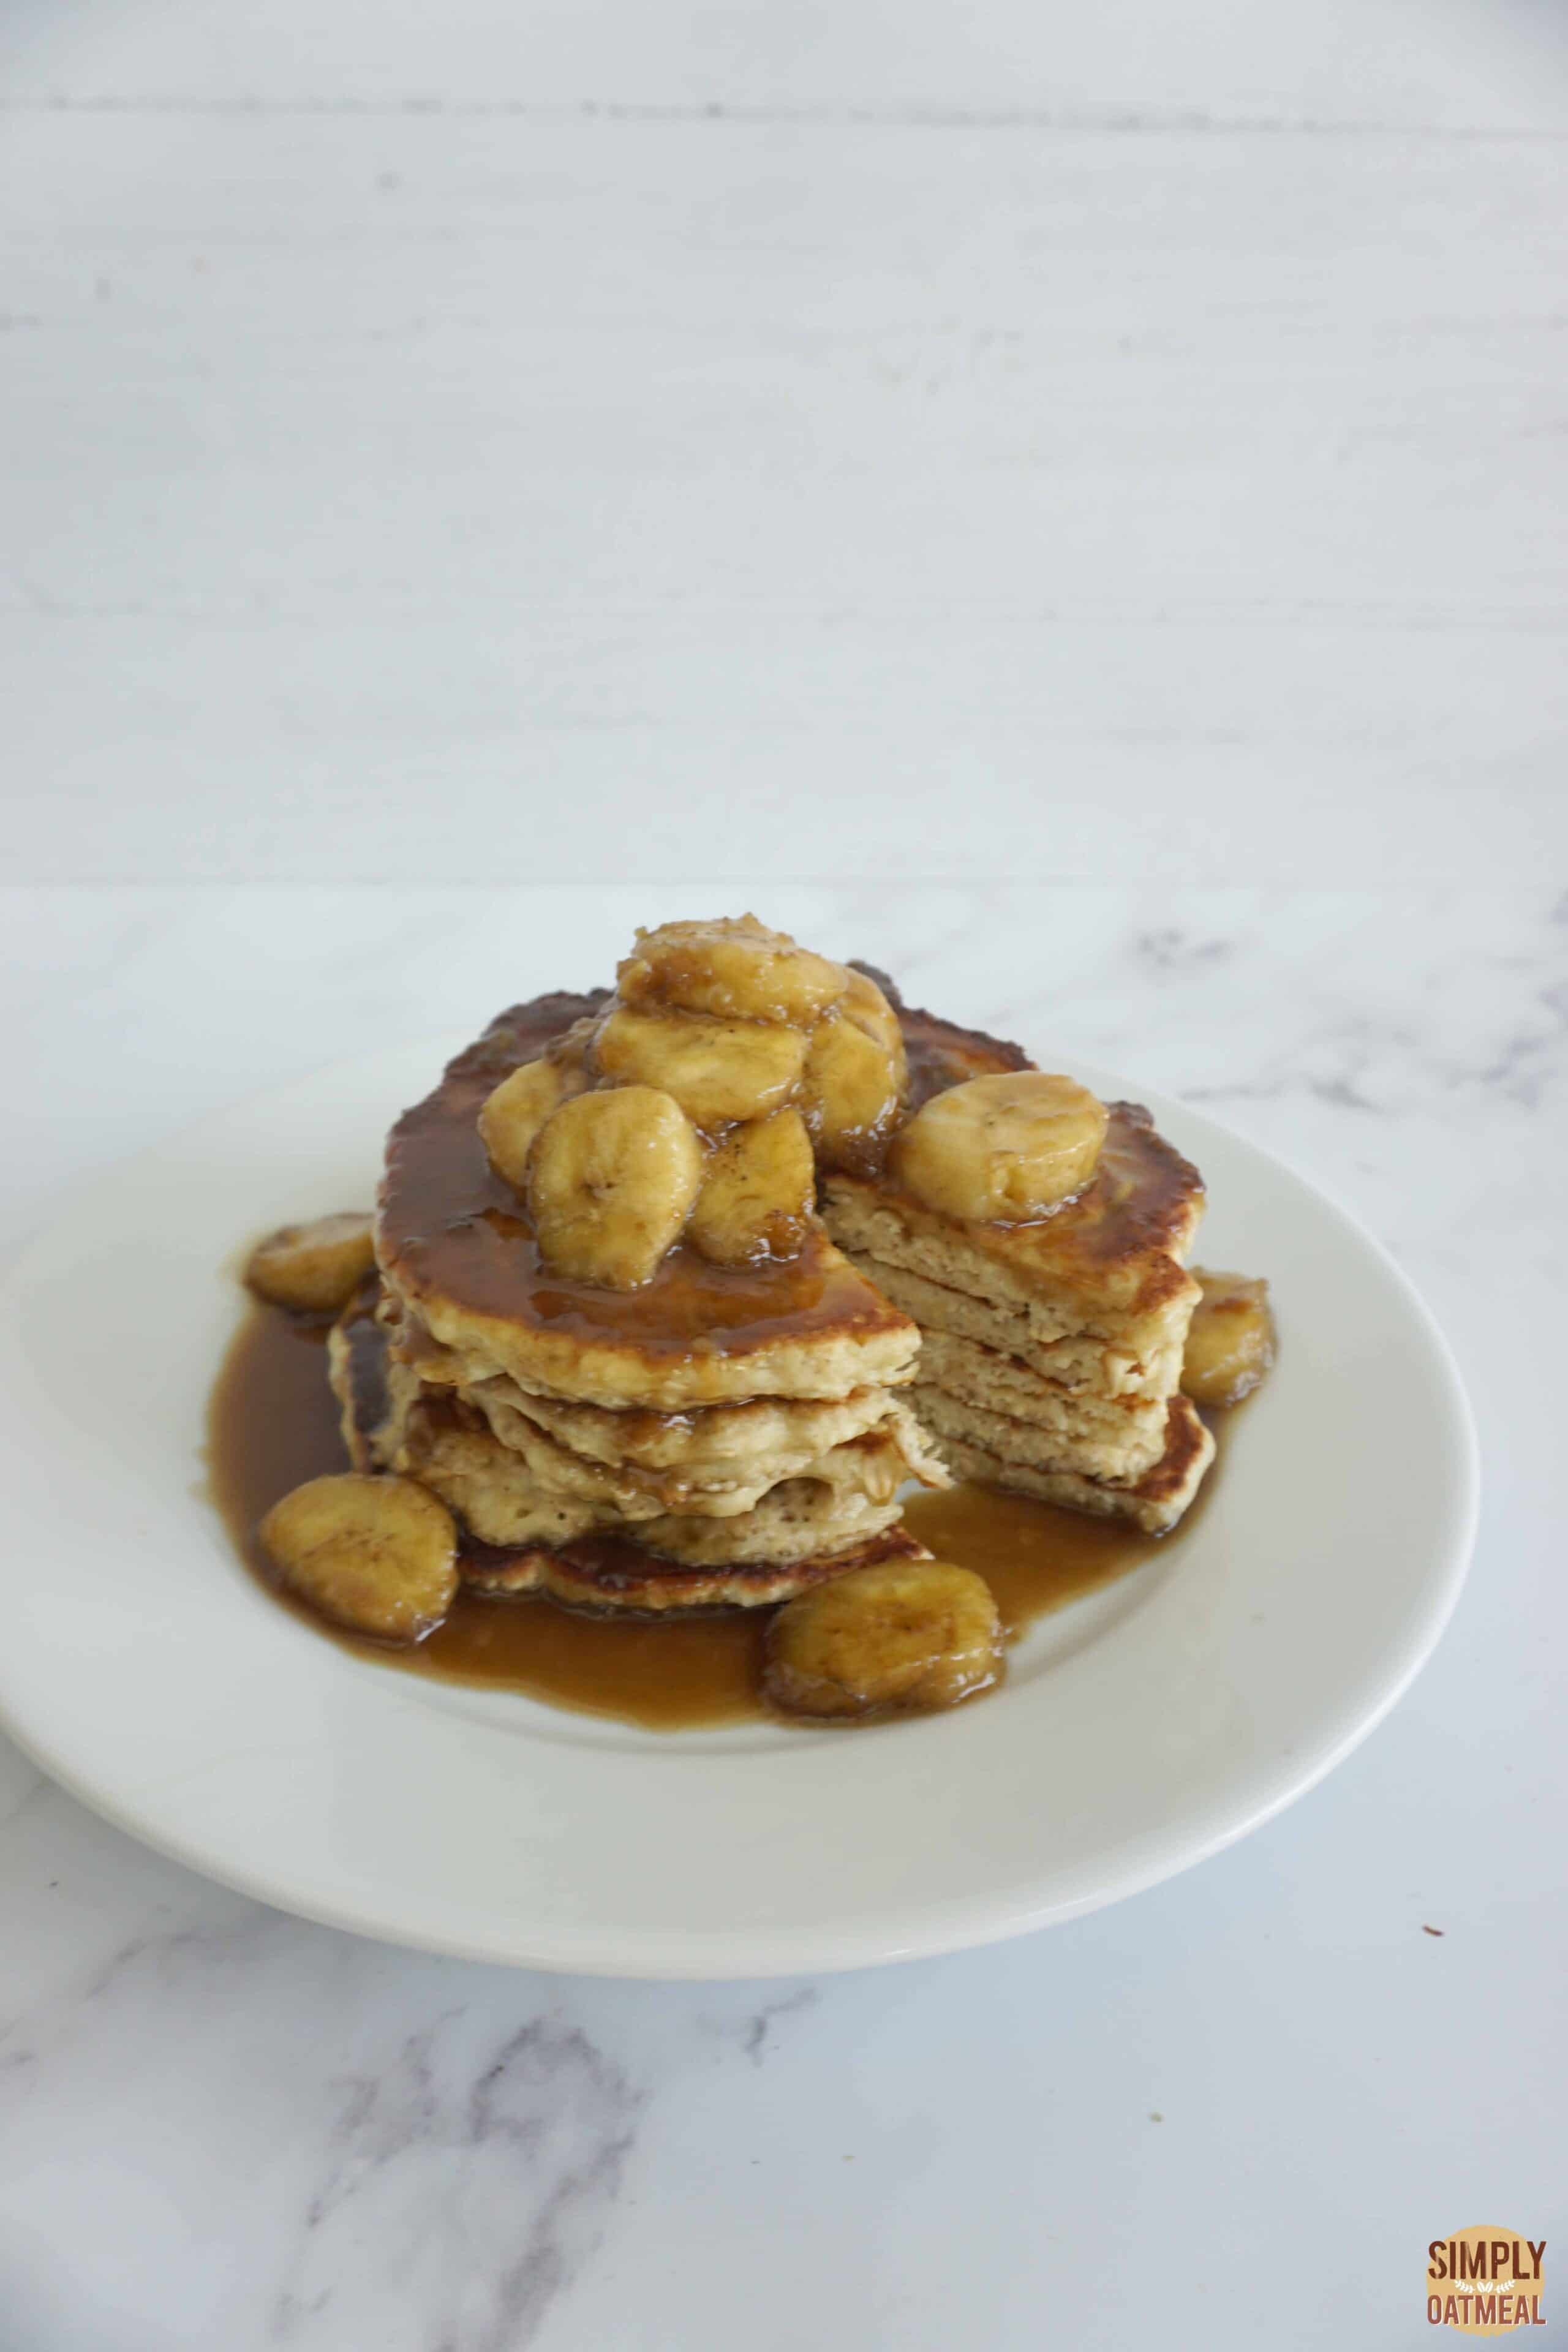 Cooked banana butterscotch oatmeal pancakes